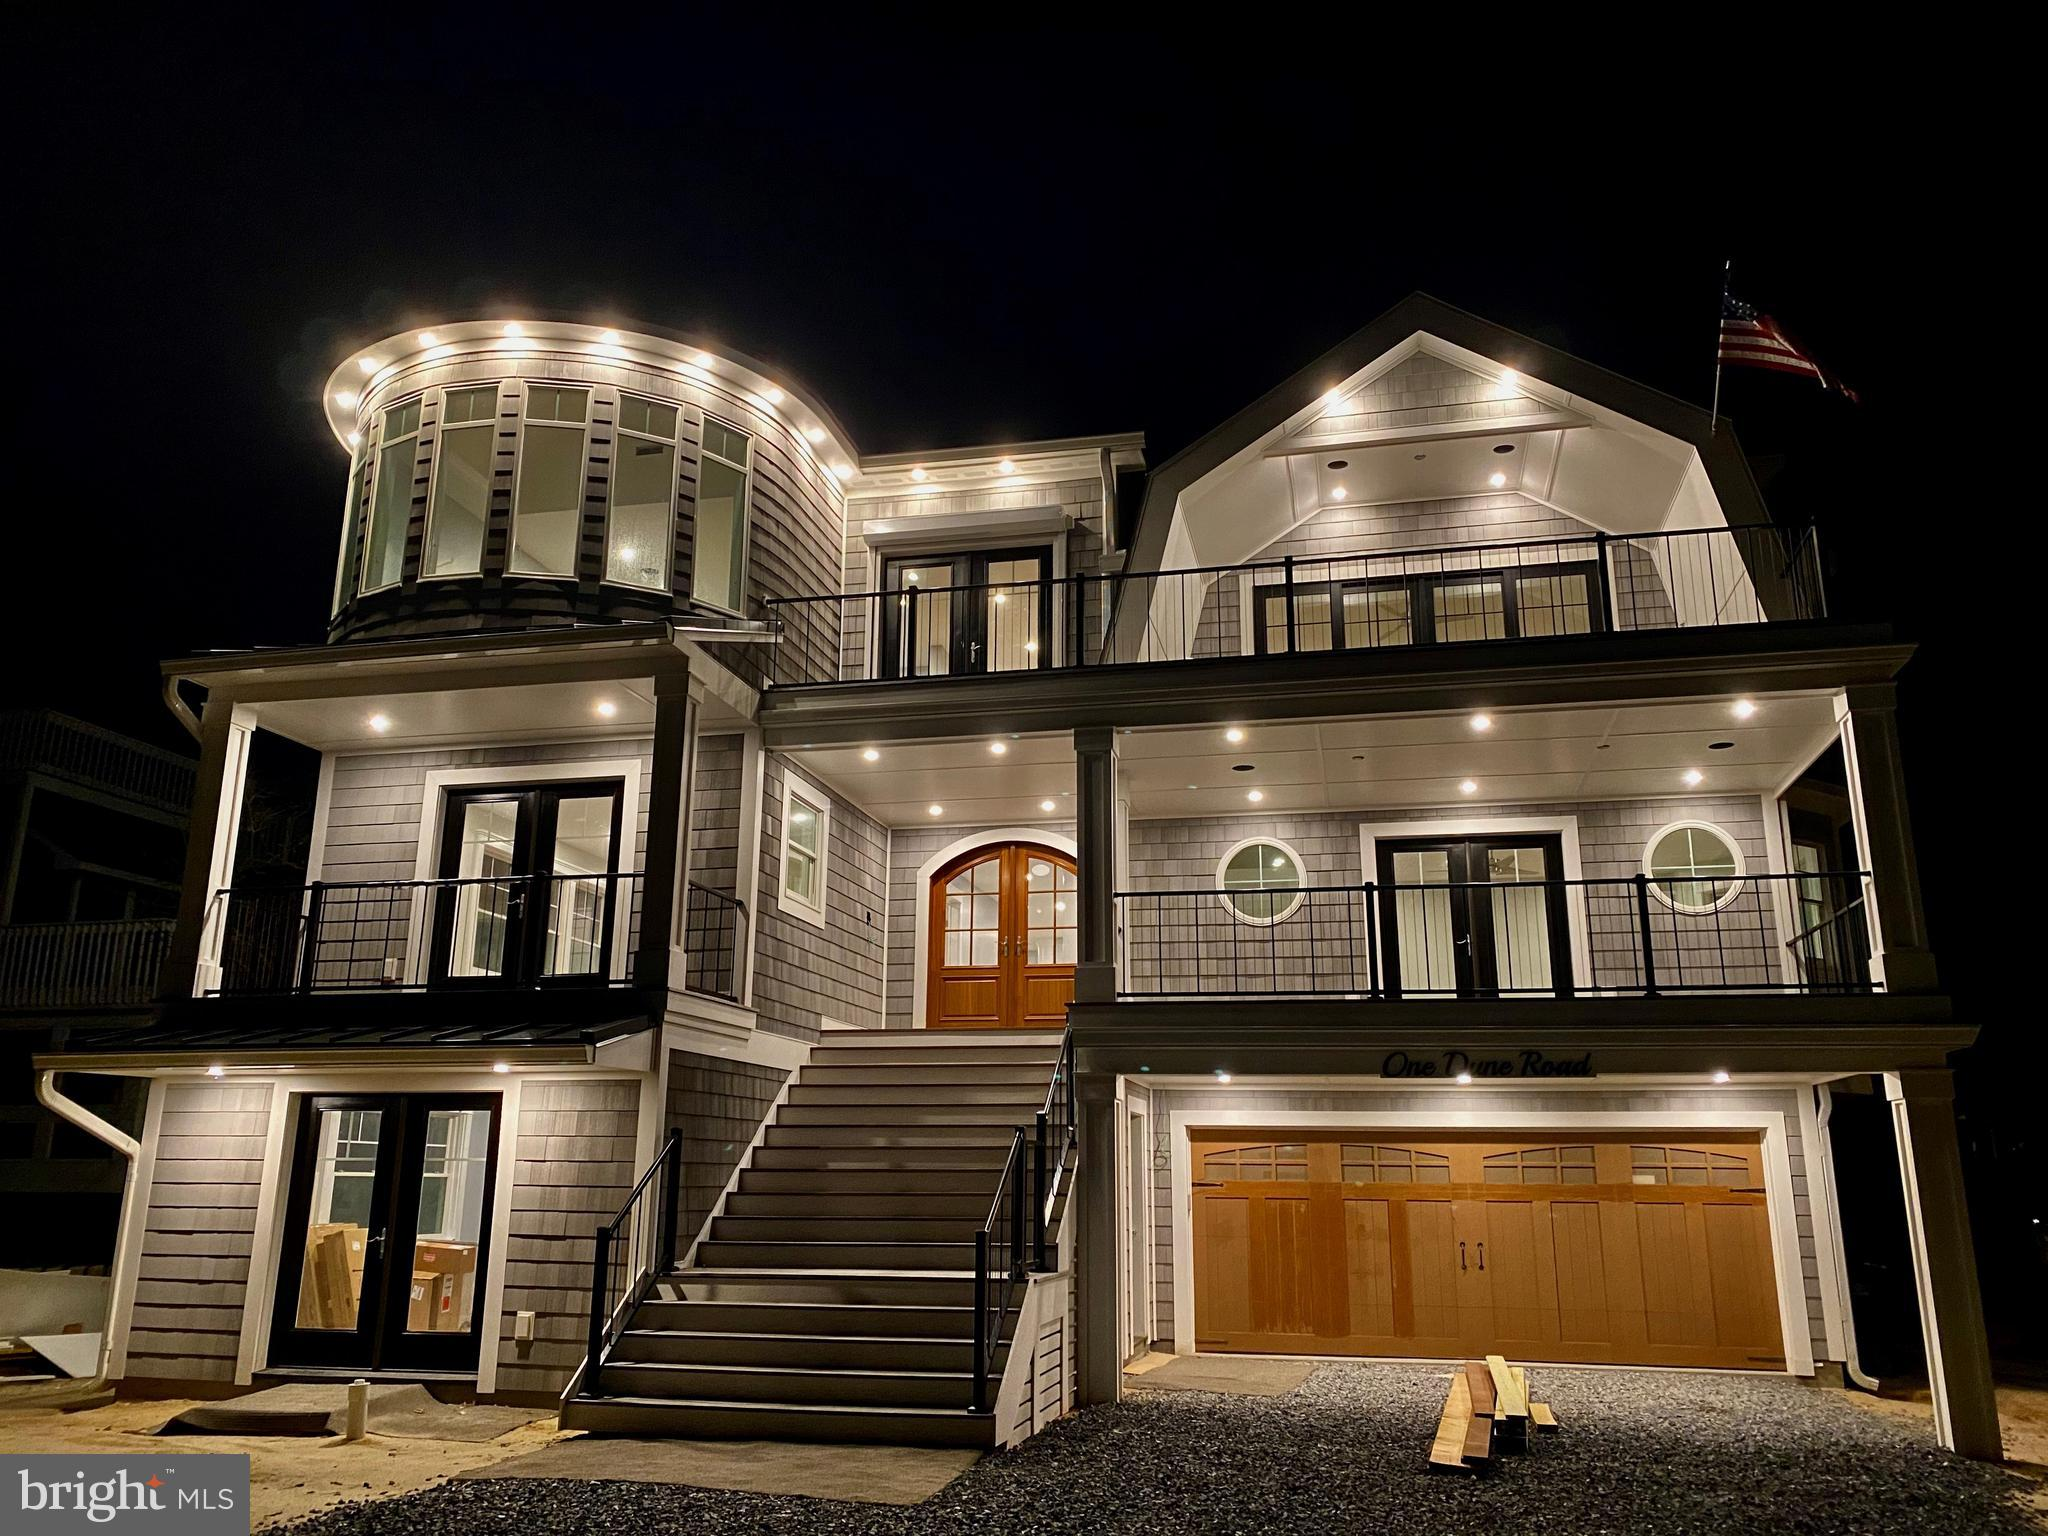 Welcome to beach living at its finest.  This elegant 6 bedroom home, nestled in Bethany's private Middlesex Beach ocean-front community, is built with the highest quality craftsmanship, upscale design, and smart technology.  This collaboration between a local designer and builder, brings a personal touch to this custom, one of a kind home.  The deliberate combination of creativity with meticulous attention to detail and exacting standards is truly stunning.  Brazilian sourced Massaranduba wood decks on all levels provide entertainment and relaxation space and  fabulous water views abound.  Perfectly suited for family gatherings or elegant entertaining, the main level includes a great room with a gas fireplace, dining room, wine cooler, gourmet kitchen featuring a large island, breakfast nook, two SubZero refrigerators, 2 two-drawer dishwashers, separate pantry, and grilling deck.  6 over sized en suite bedrooms include a bunk room with custom queen /double beds and built in cabinetry.  Two laundry centers, a theater / gym, 2nd living room with wet bar, fridge and microwave, elevator, and 2 car garage with electric car chargers, and dual outside shower rooms complete the home.  Enjoy spectacular Panoramic views of the Atlantic Ocean with inspiring sunrises and spectacular sunsets from the spacious skydeck.  Delivery 2nd Quarter 2021.